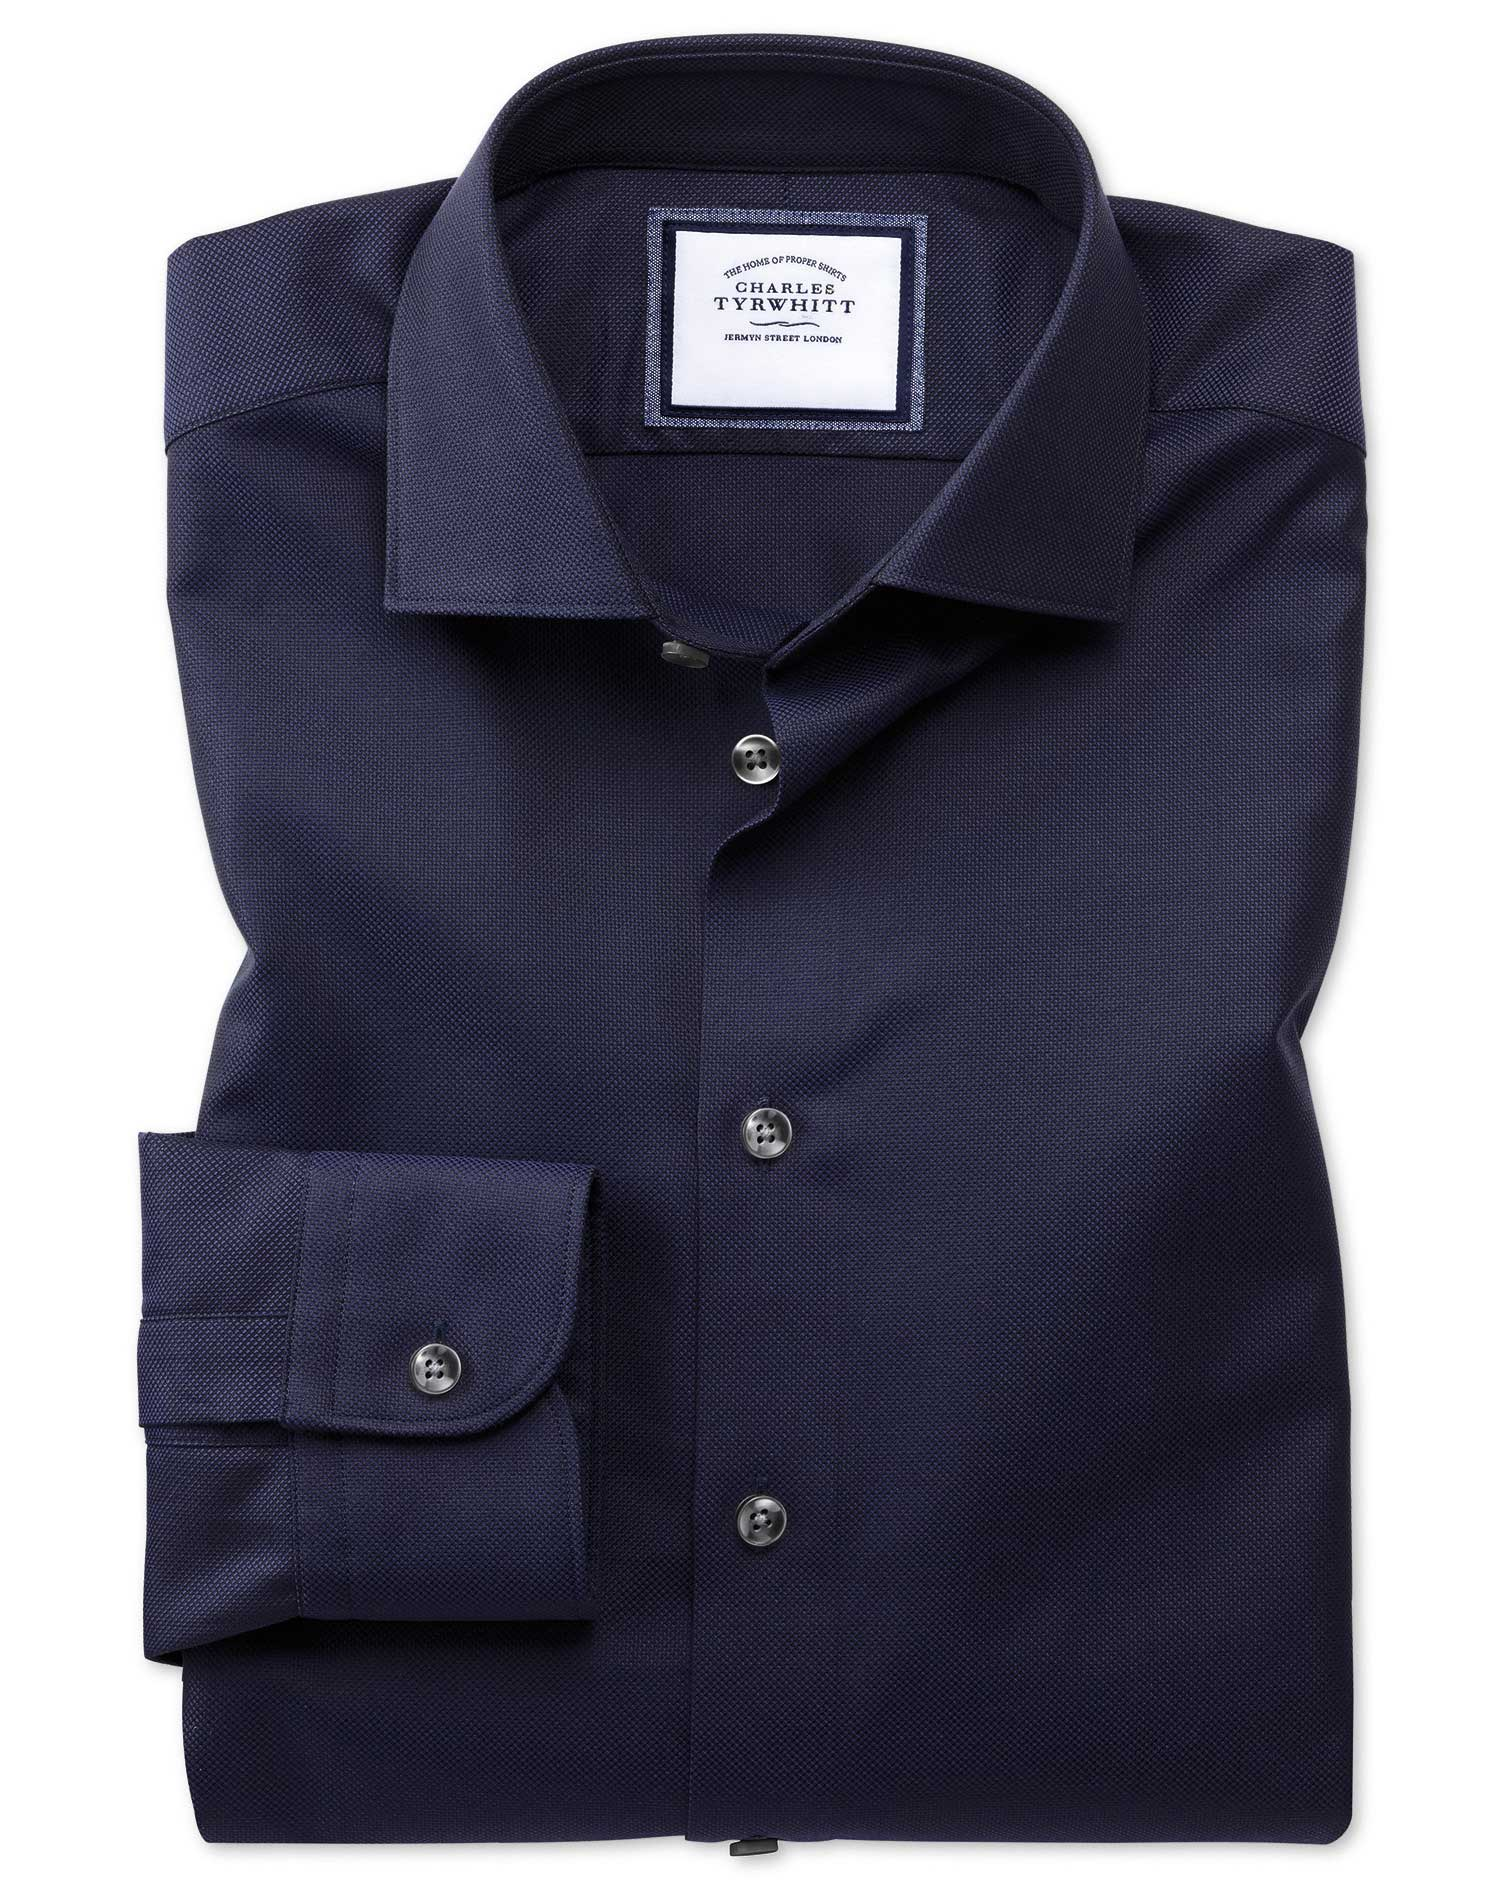 Classic Fit Semi-Cutaway Business Casual Navy Textured Egyptian Cotton Formal Shirt Single Cuff Size